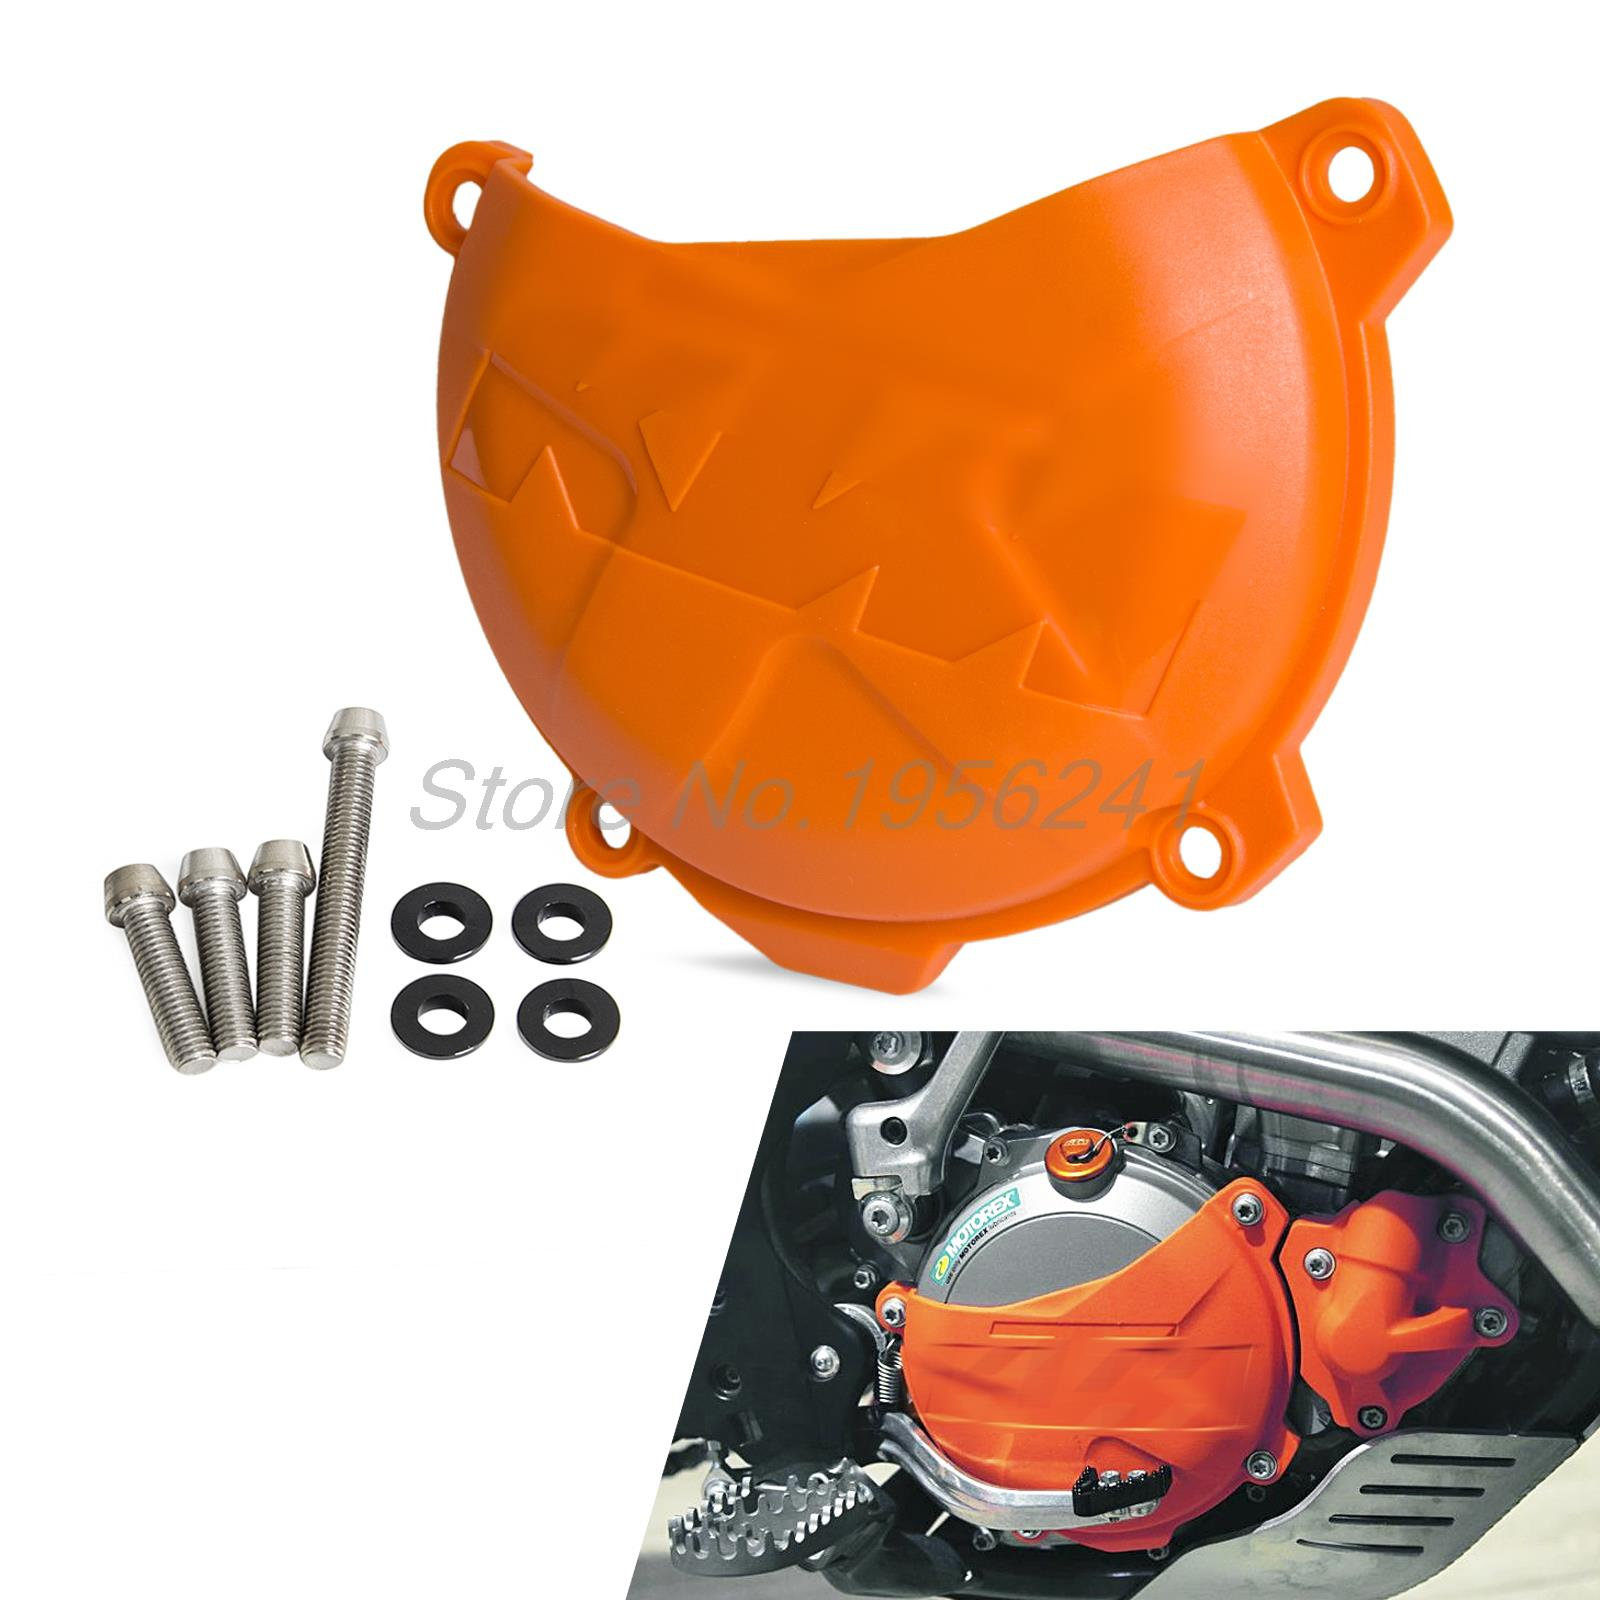 Clutch Cover Protection Cover for KTM 250 XCF-W 350 XCF-W FREERIDE 350 2012-2017 new cnc billet clutch cover outside for ktm 250 xcf w 2008 2009 2010 2011 2012 2013